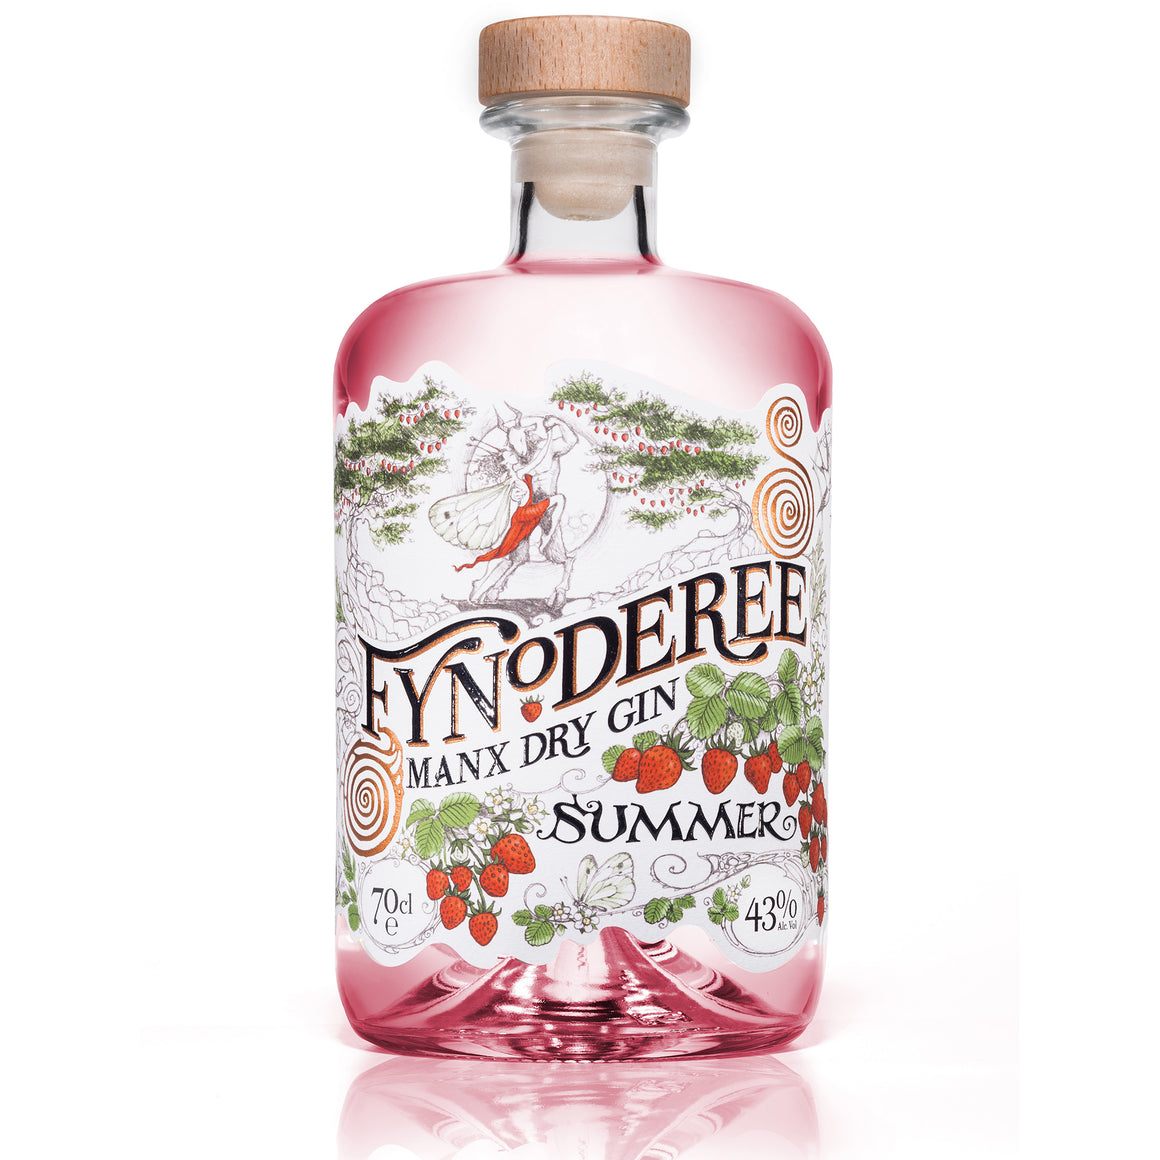 SOLD OUT: Fynoderee Manx Dry Gin - Pink Summer Edition